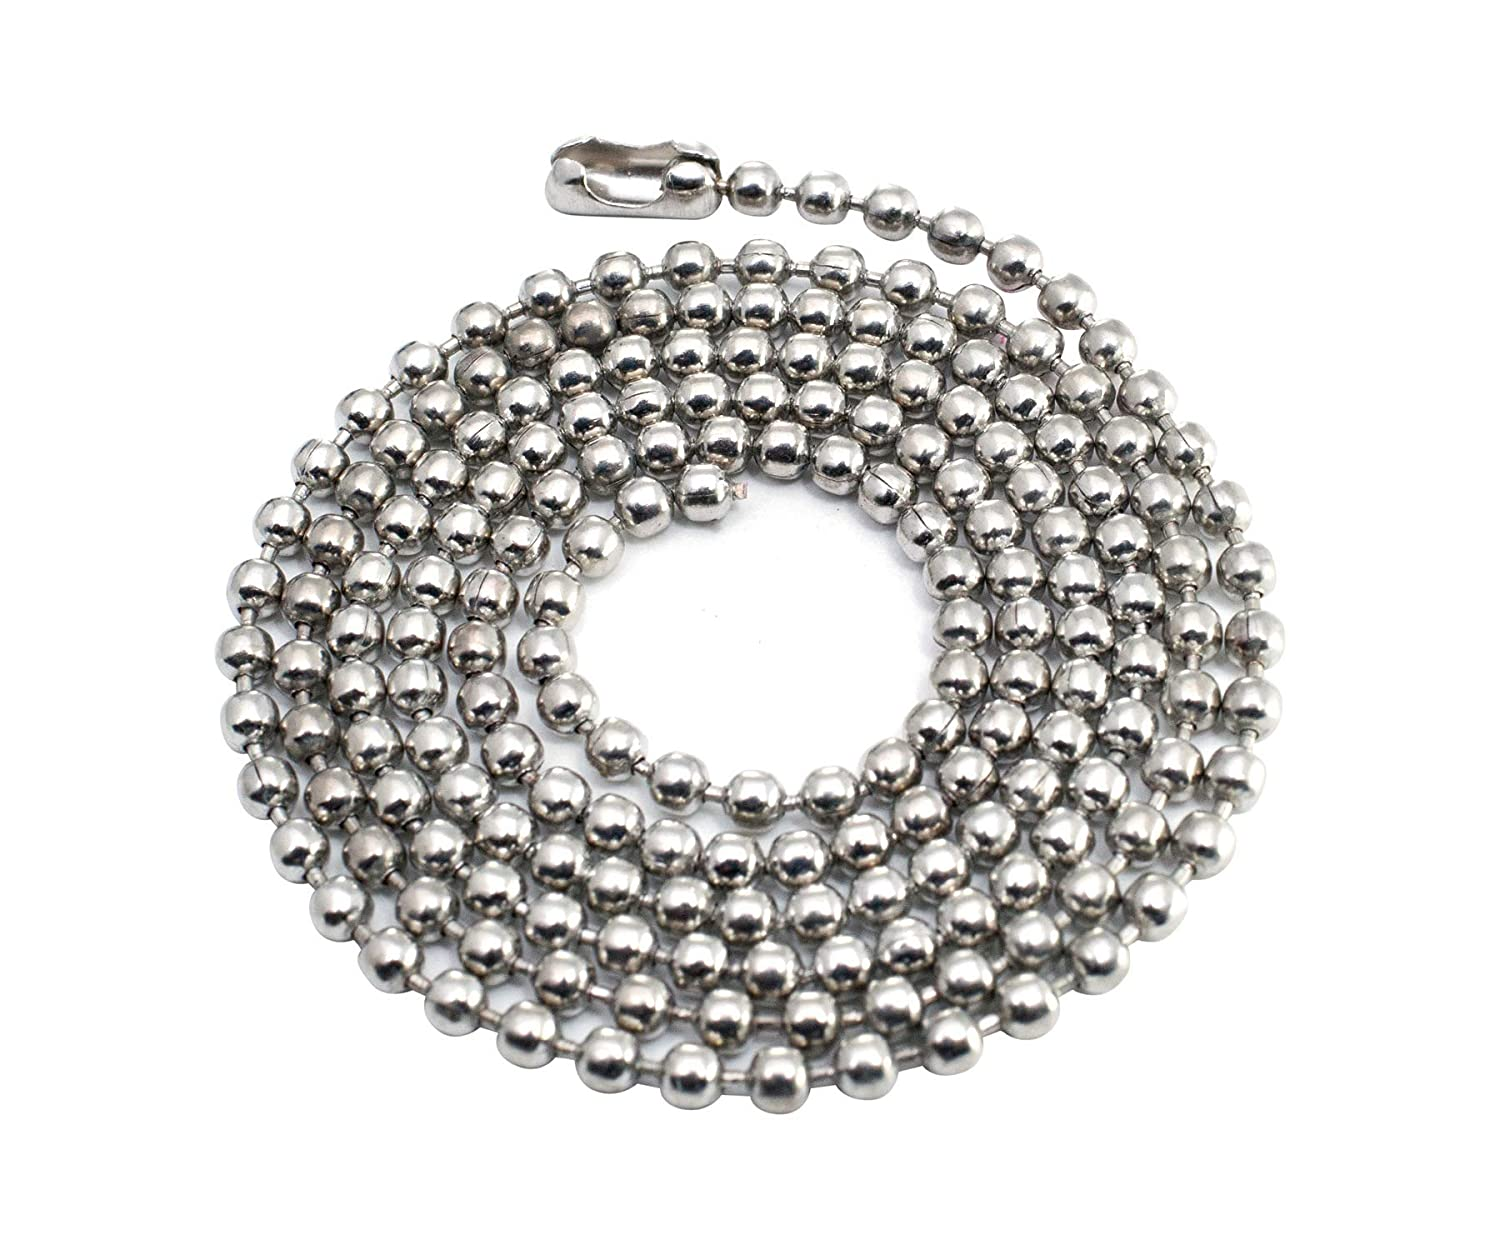 25pcs Nickel Plated Ball Chain Necklace 30 Inches Long 2.4mm Bead Size # 3 Metal Bead Steel Chain Military Bead Chain Dog Tag Necklace by Special100%